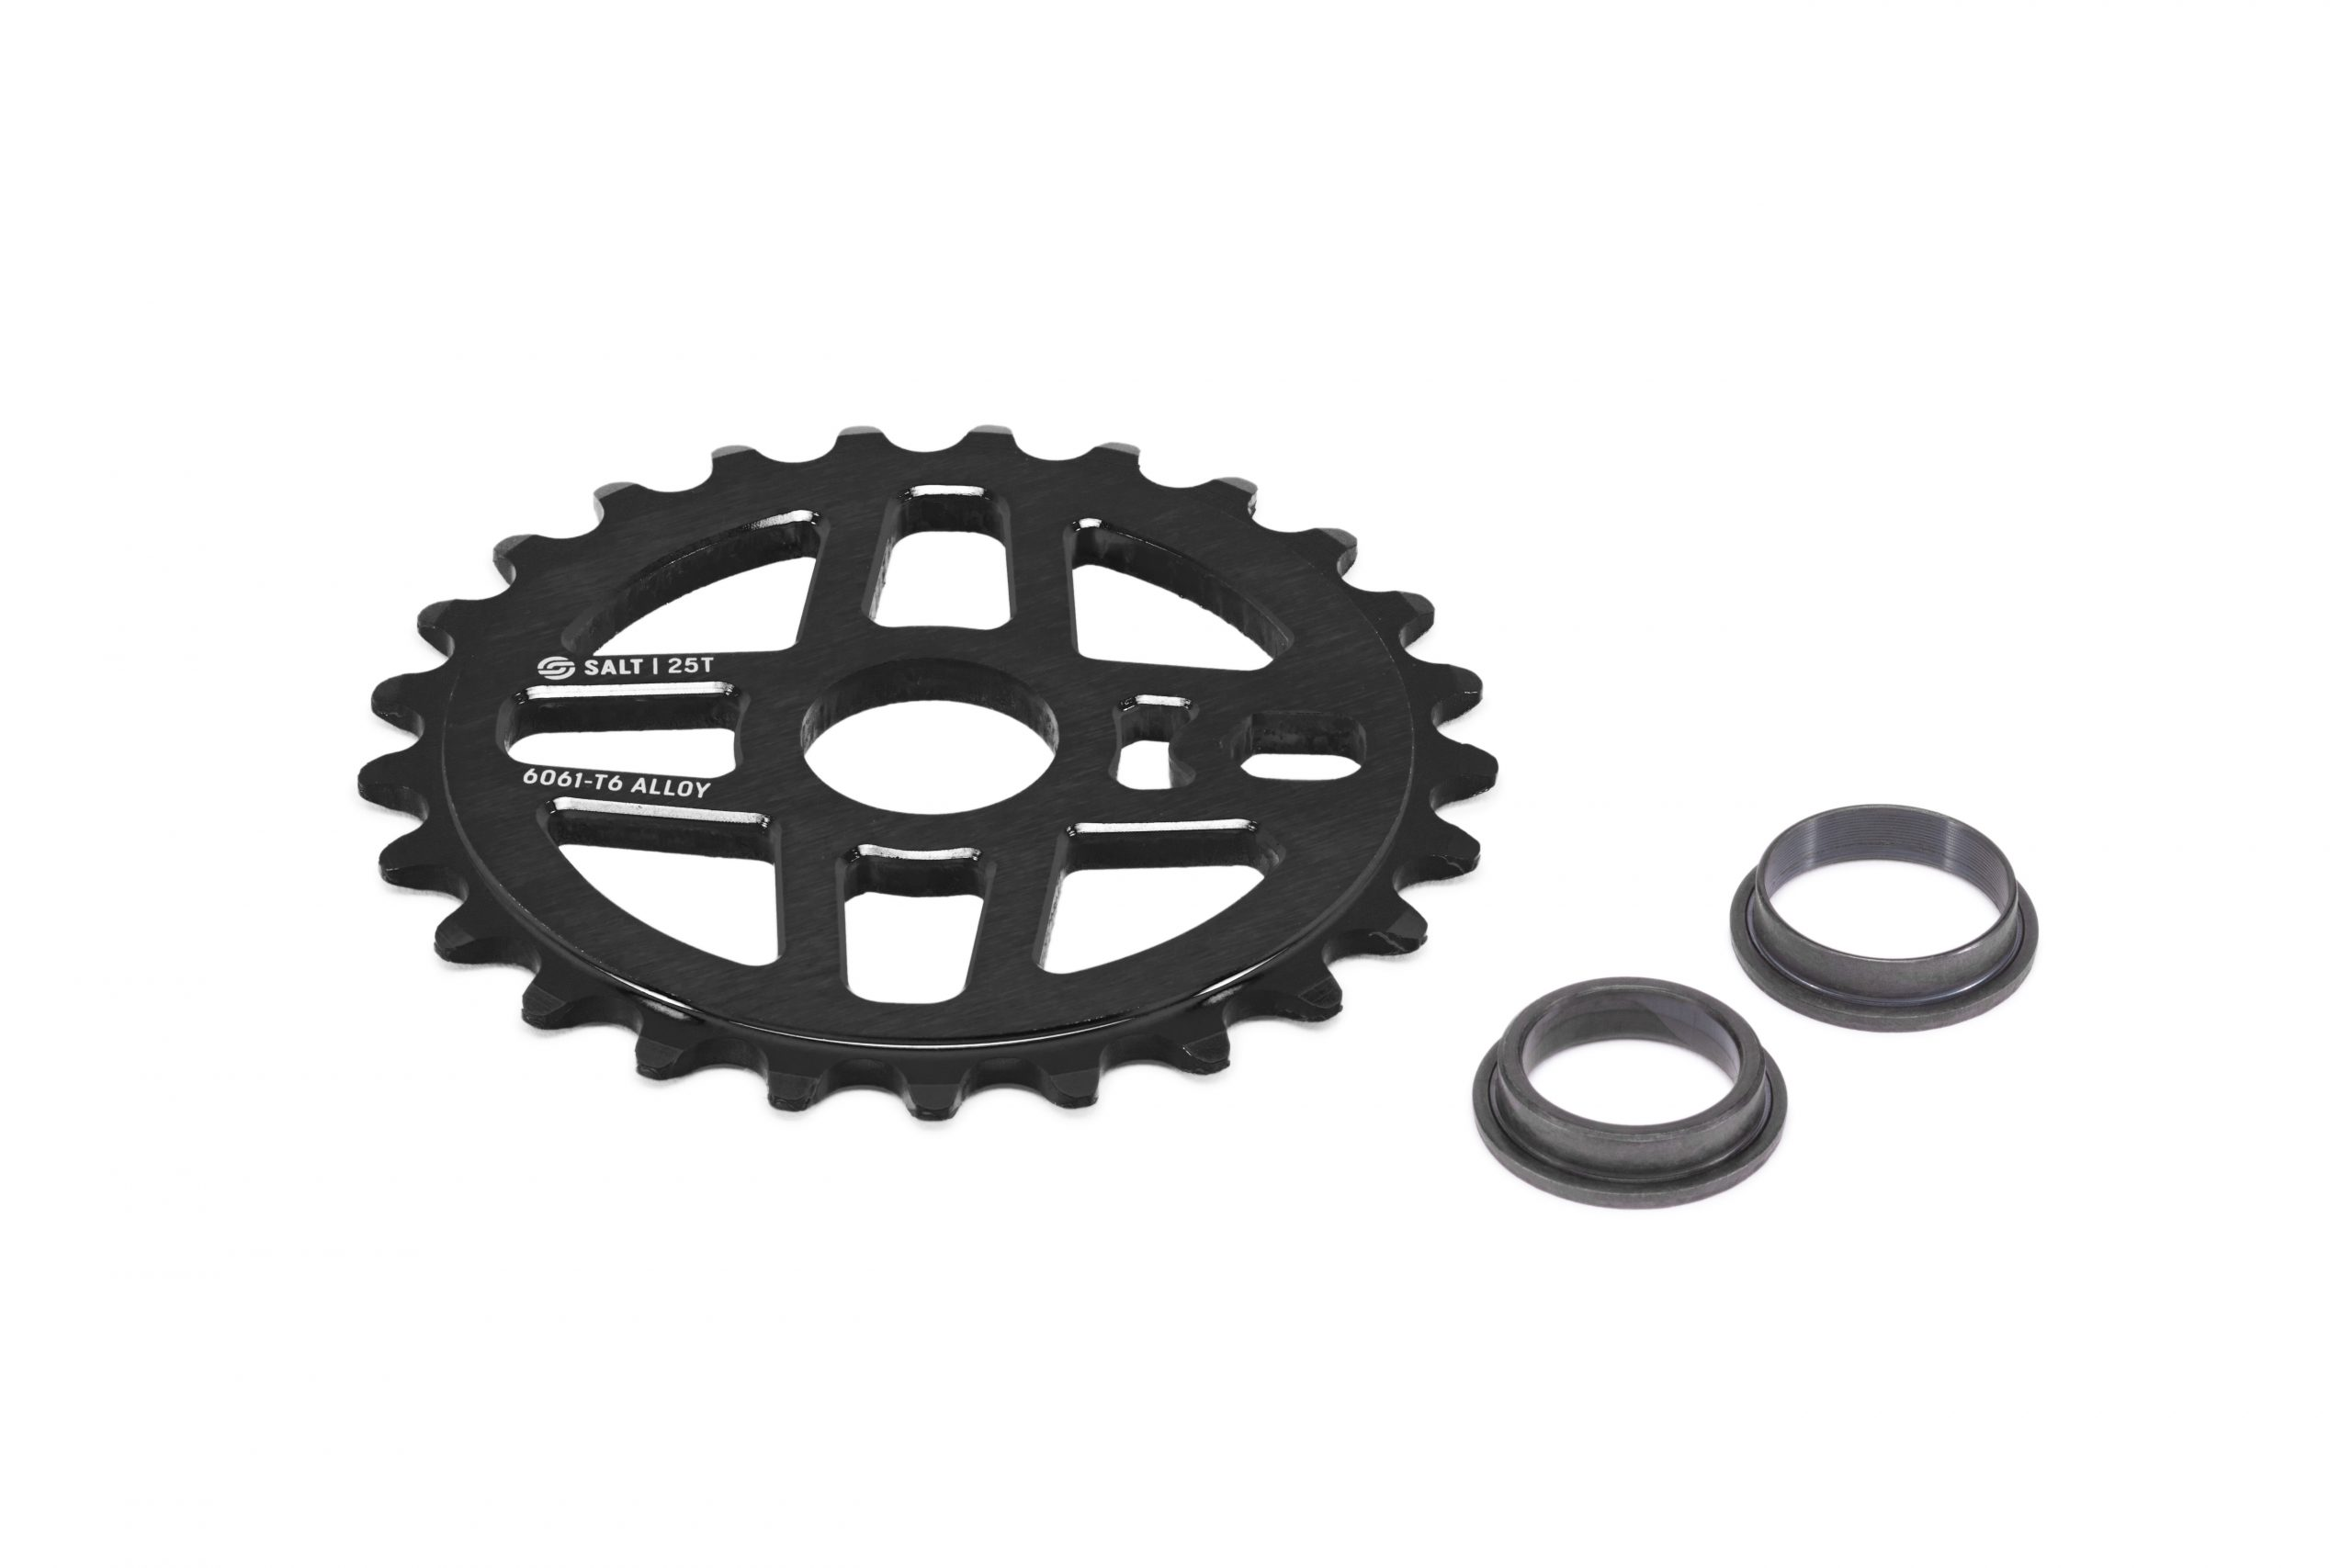 Salt_Pro_sprocket_25t_black-02